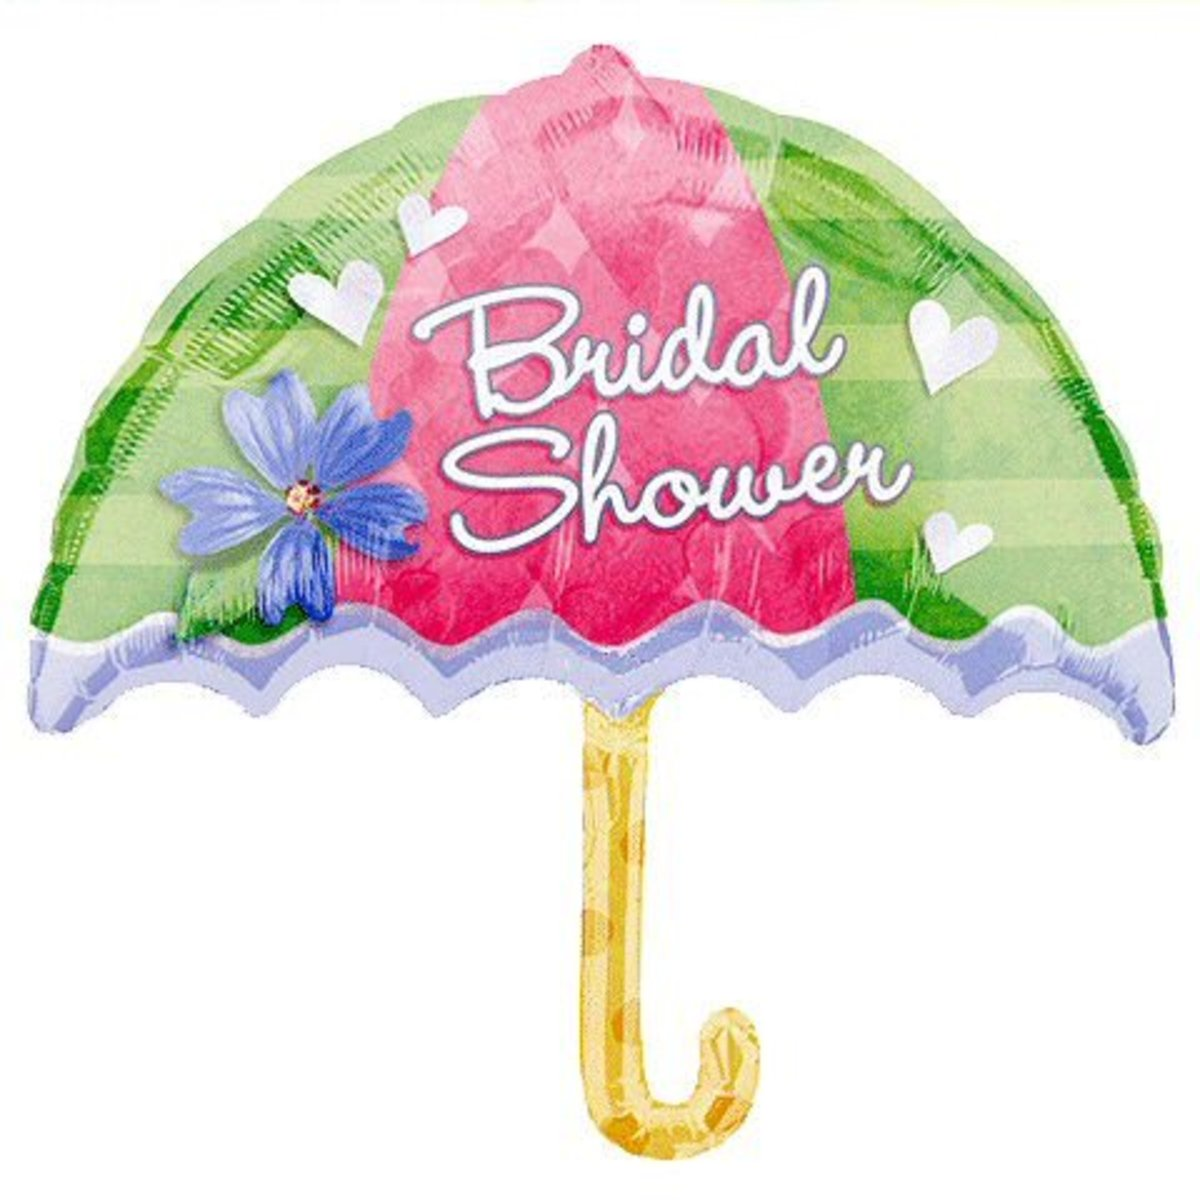 10 Fun Bridal Shower Game Ideas